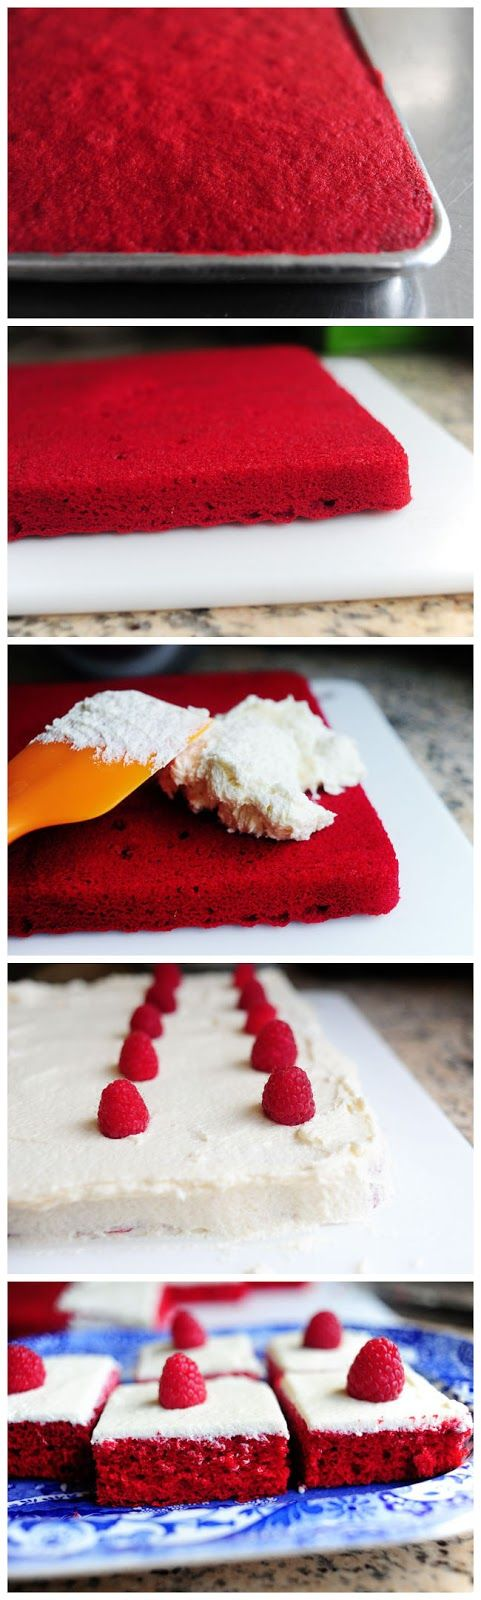 Red Velvet Sheet Cake | Cakes | Pinterest